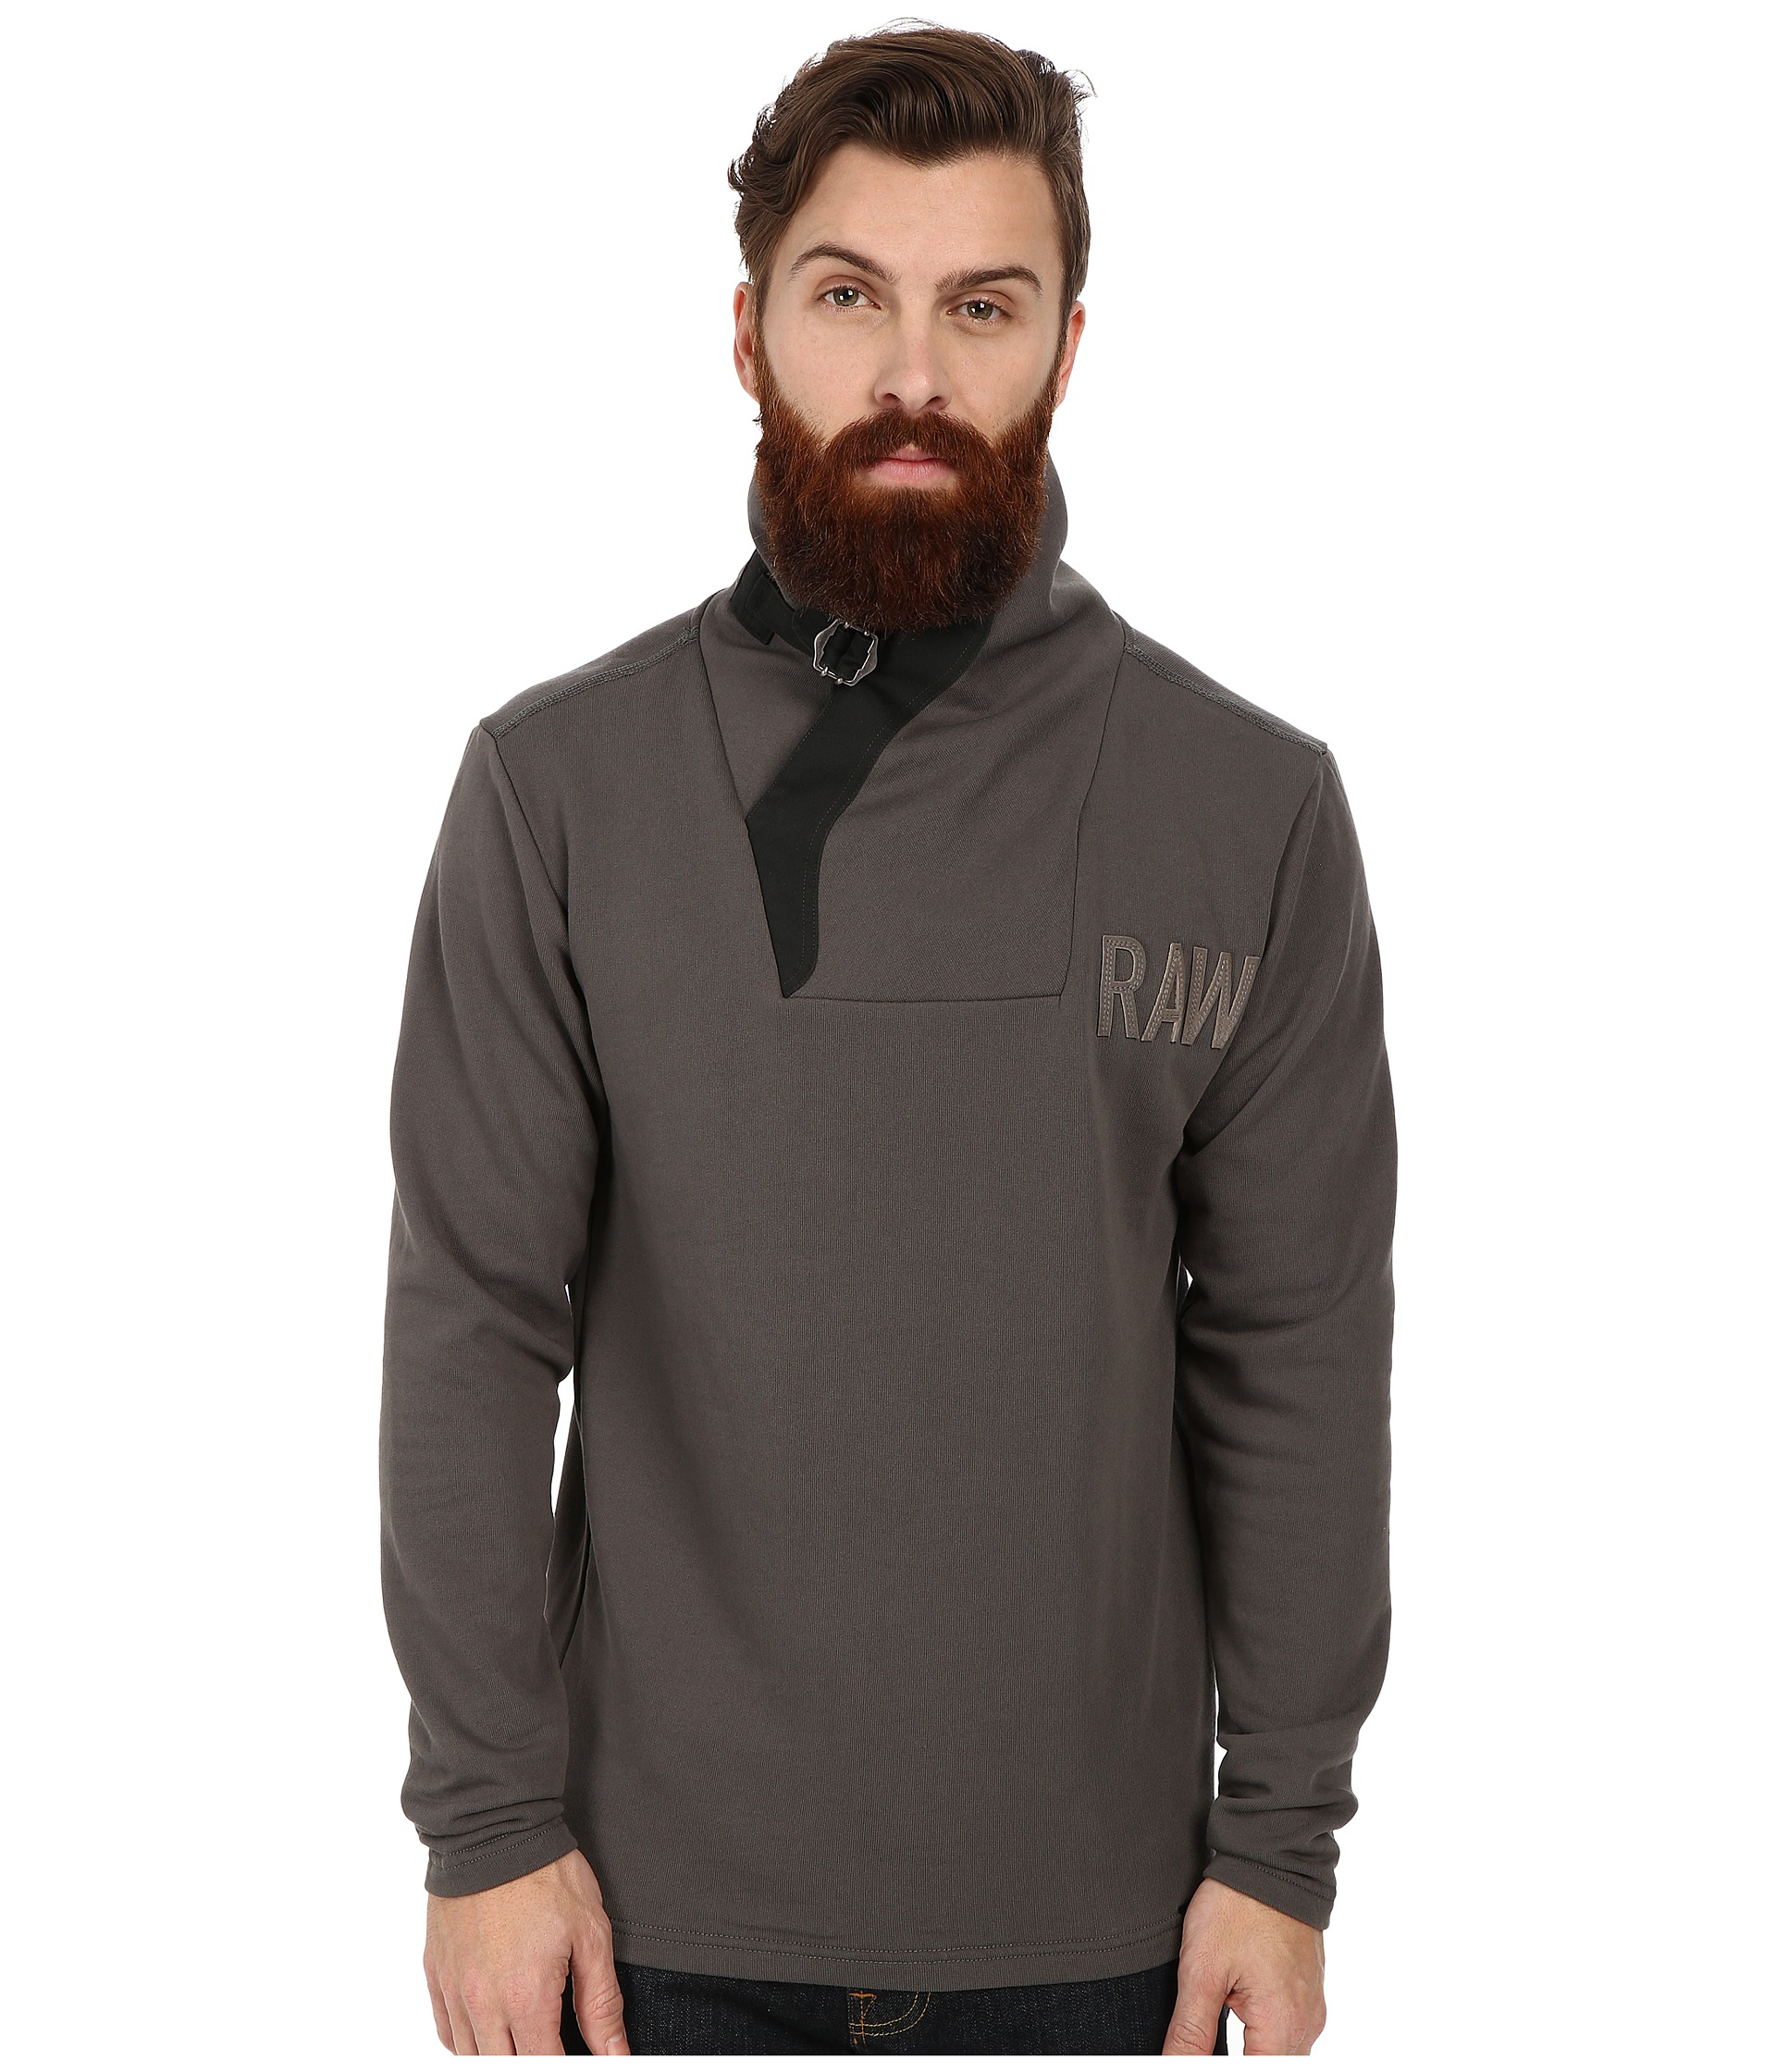 g star raw aero art buckle long sleeve sweater in gray for. Black Bedroom Furniture Sets. Home Design Ideas